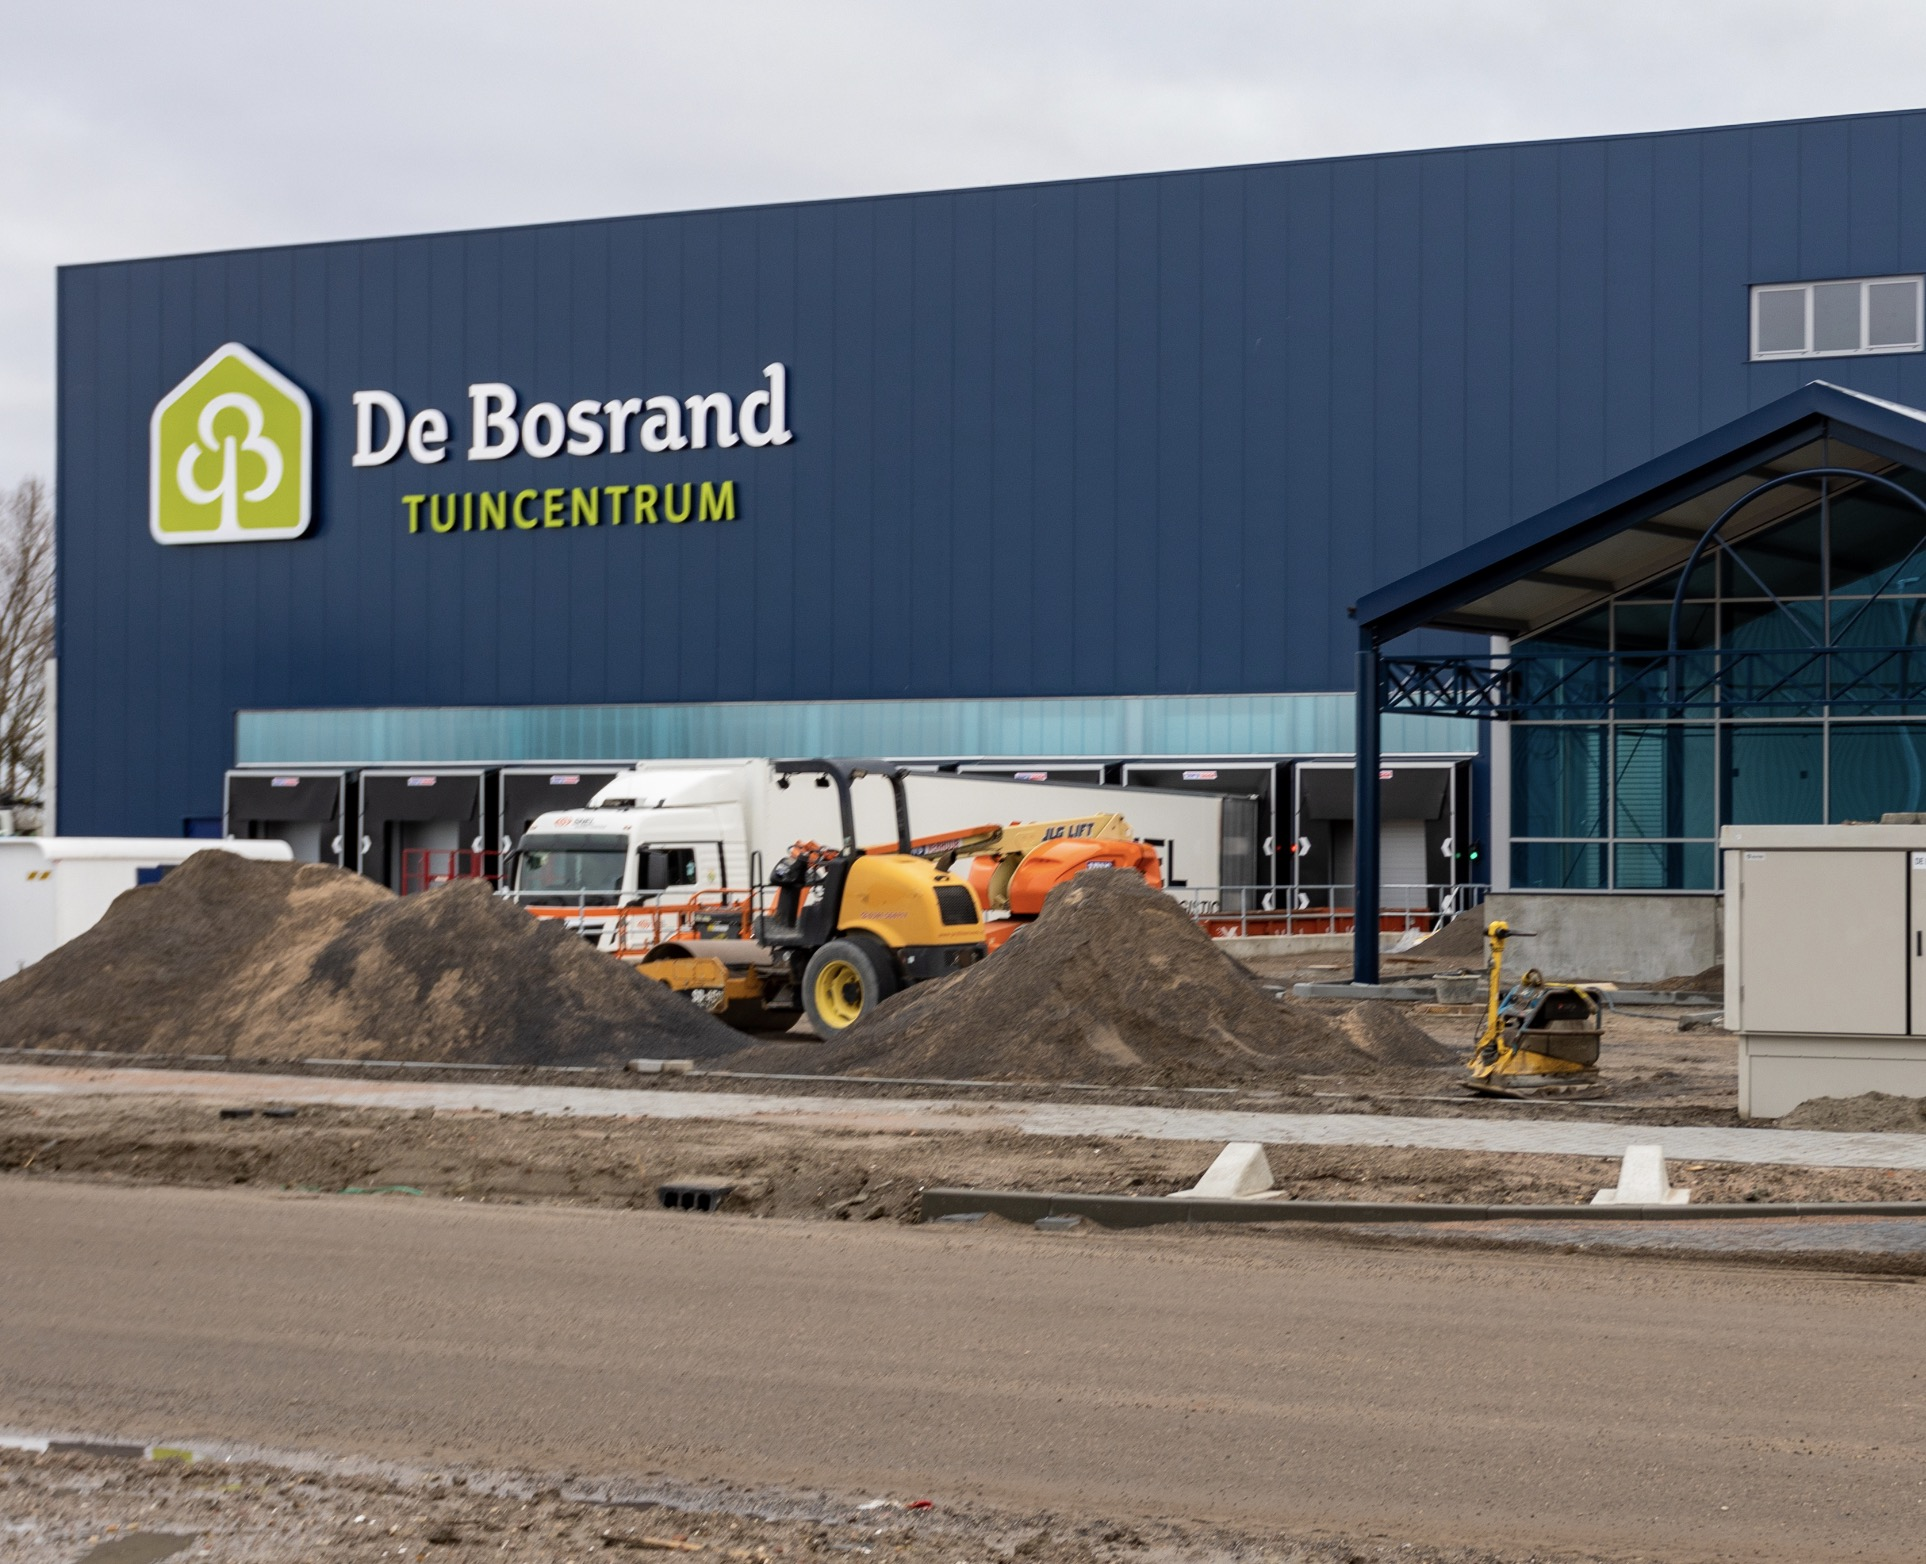 De Bosrand is open